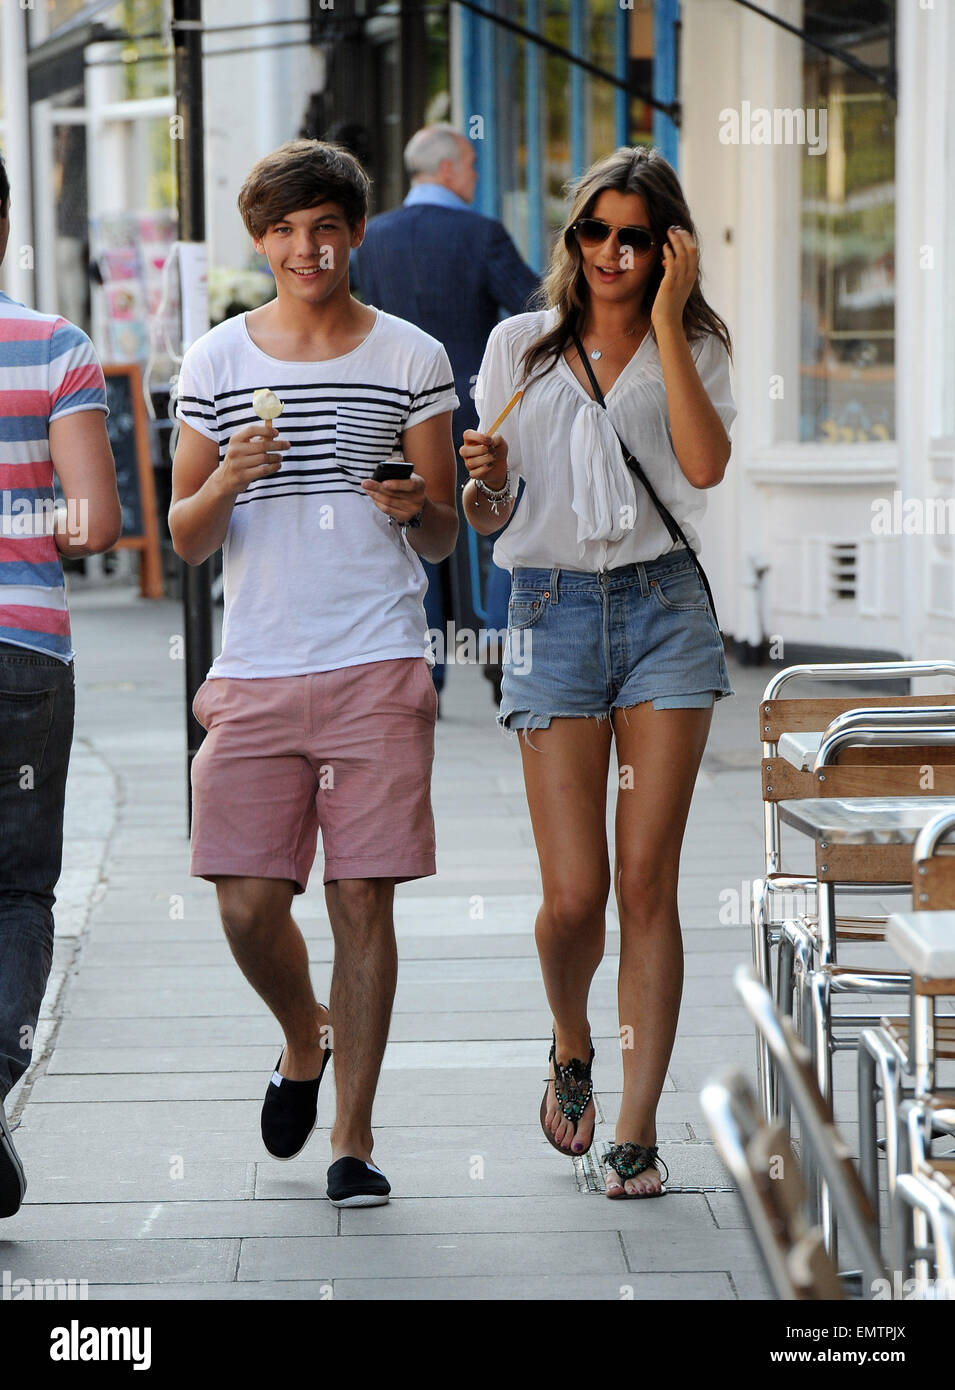 4b780c5f9577 SEPT.2011 LONDON LOUIS TOMLINSON FROM ONE DIRECTION AND NEW GIRLFRIEND  MODEL ELEANOR